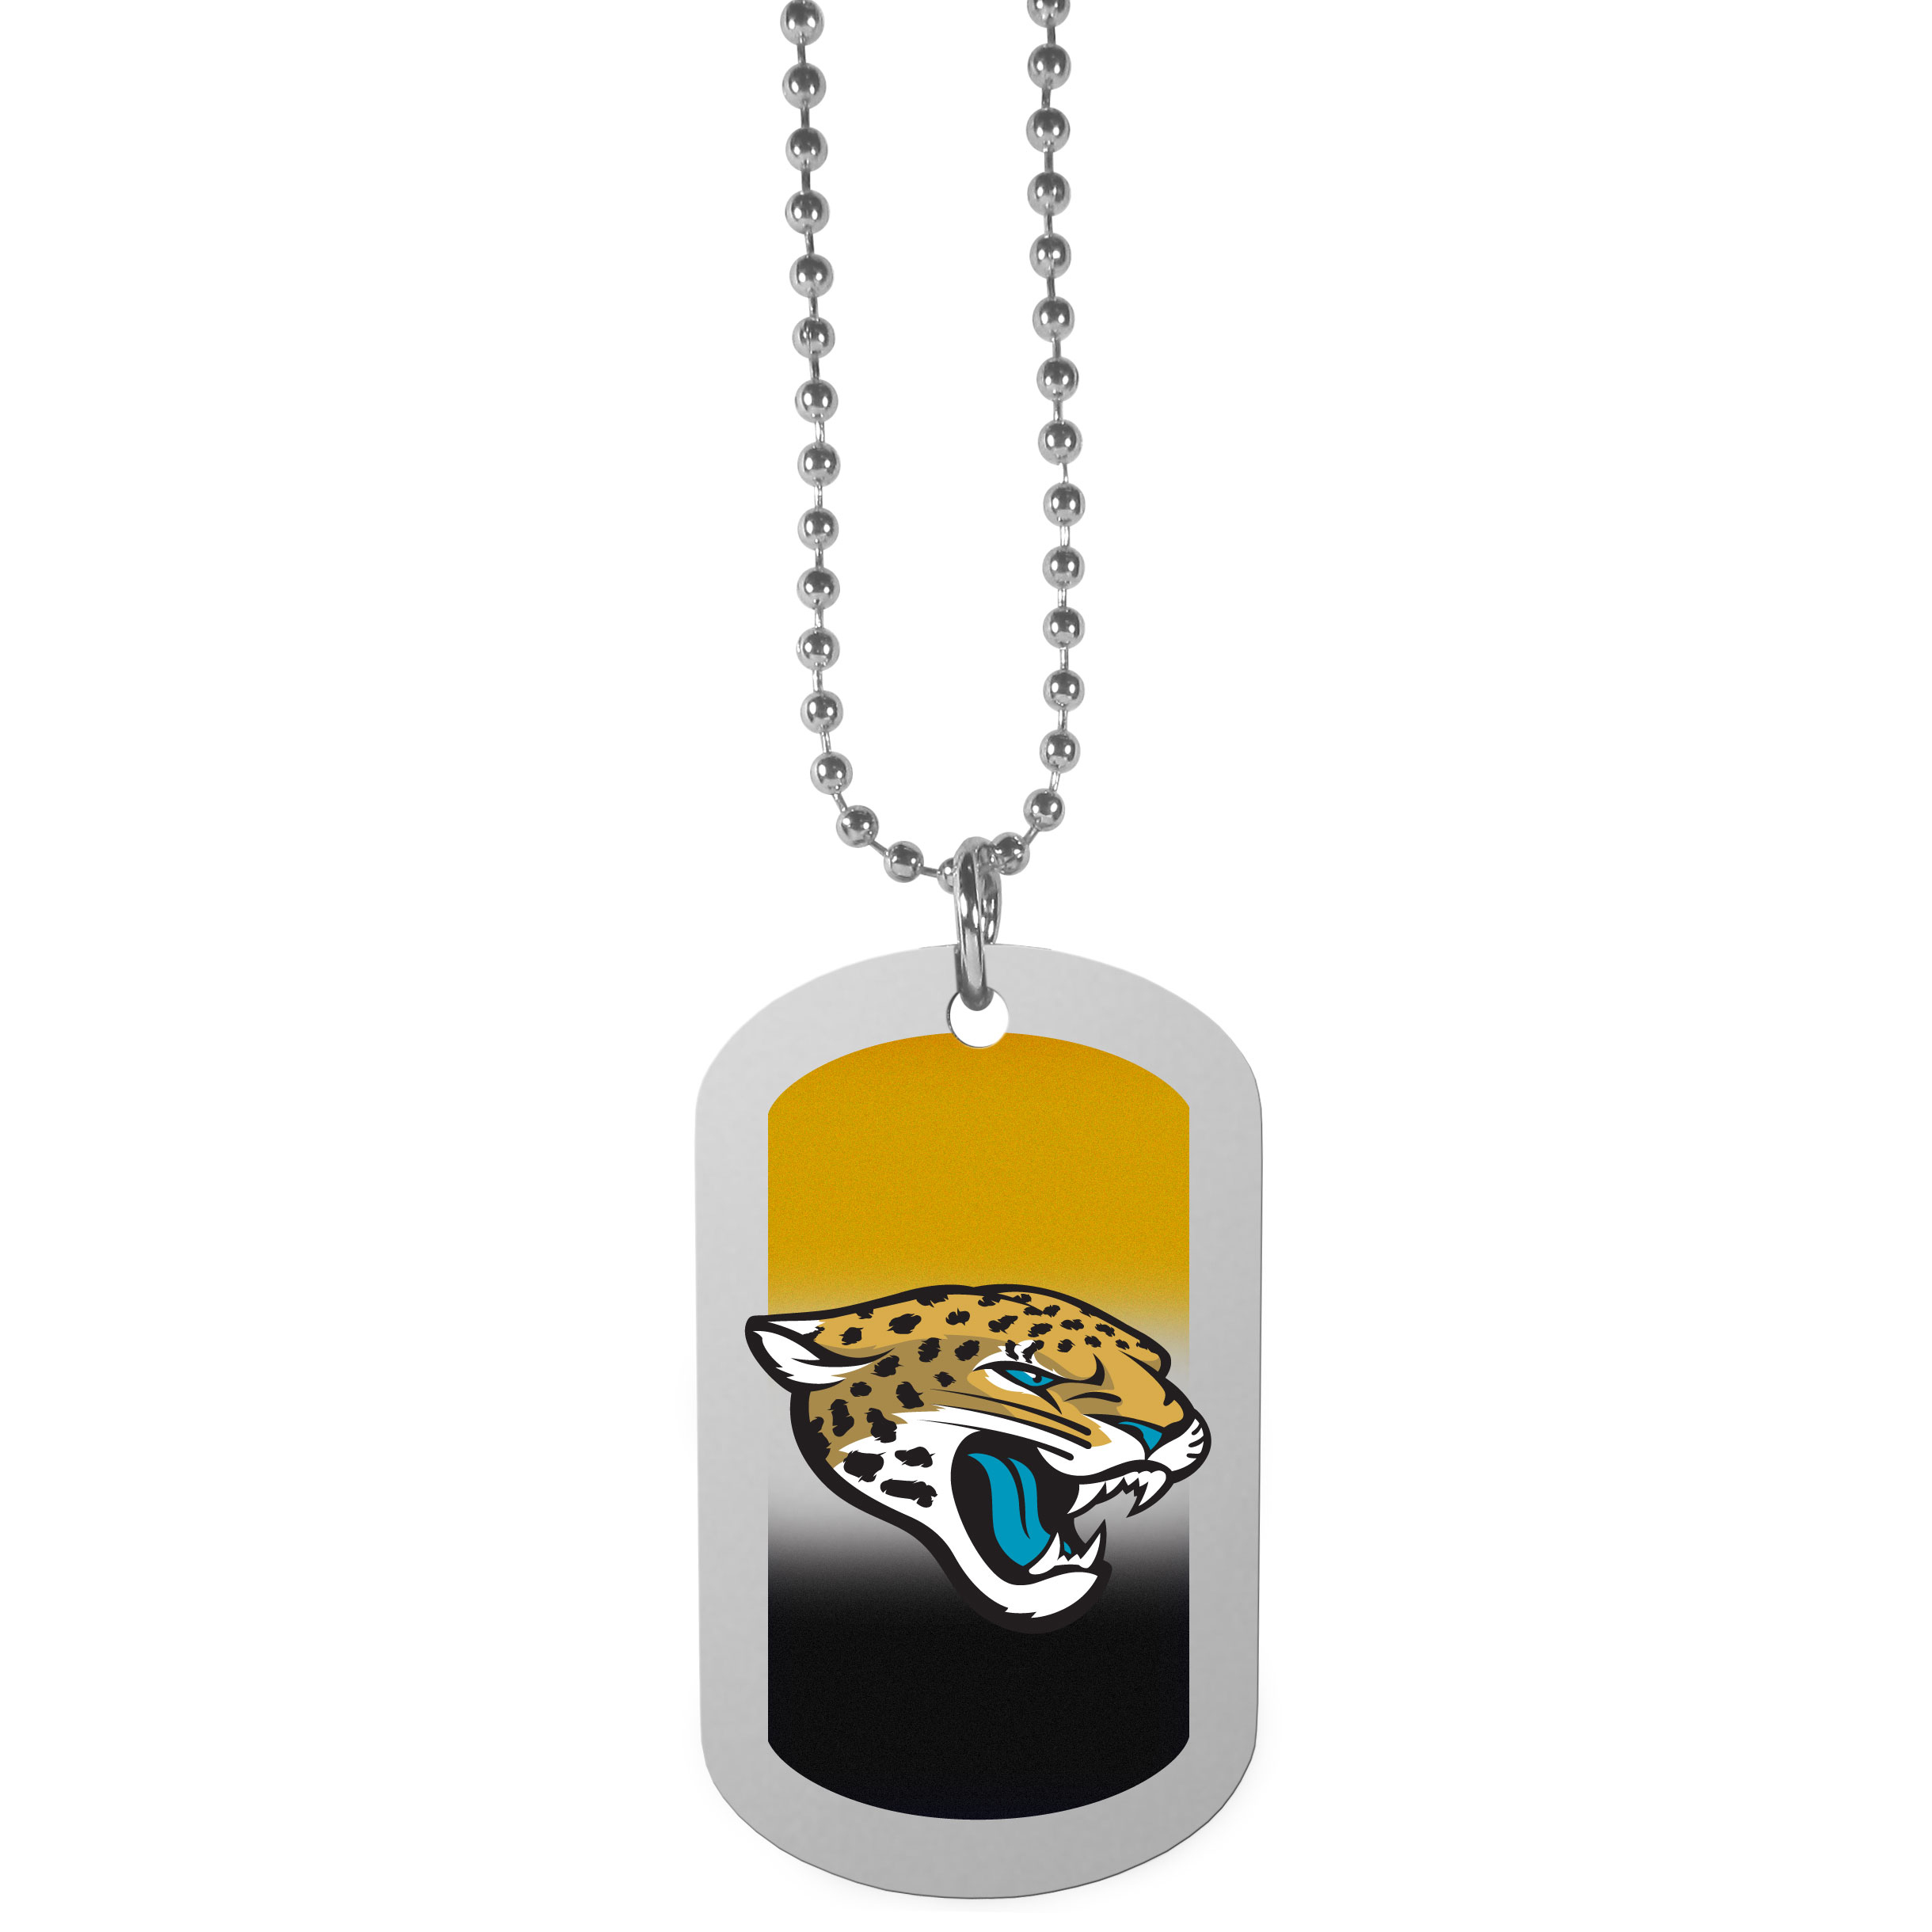 Jacksonville Jaguars Team Tag Necklace - Dog tag necklaces are a fashion statement that is here to stay. The sporty version of the classic tag features a gradient print in team colors featuring a full color team logo over a high polish tag to create a bold and sporty look. The tag comes on a 26 inch ball chain with a ball and joint clasp. Any Jacksonville Jaguars would be proud to wear this attractive fashion accessory.